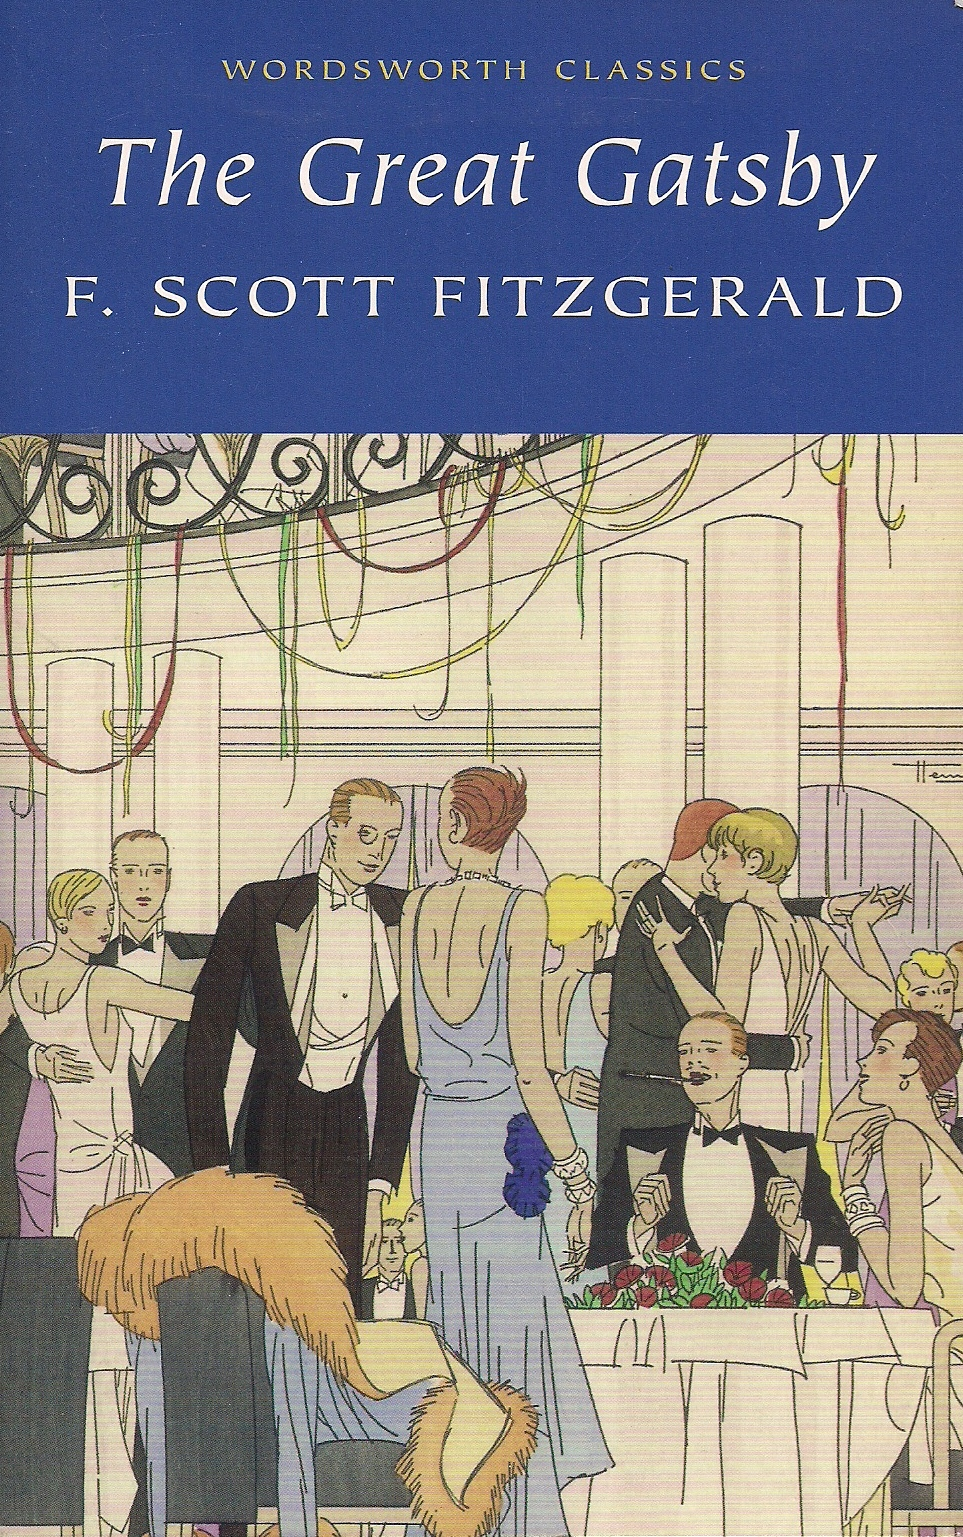 Compare and contrast Gatsby and Tom in F. Scott Fitzgerald's The Great Gatsby.